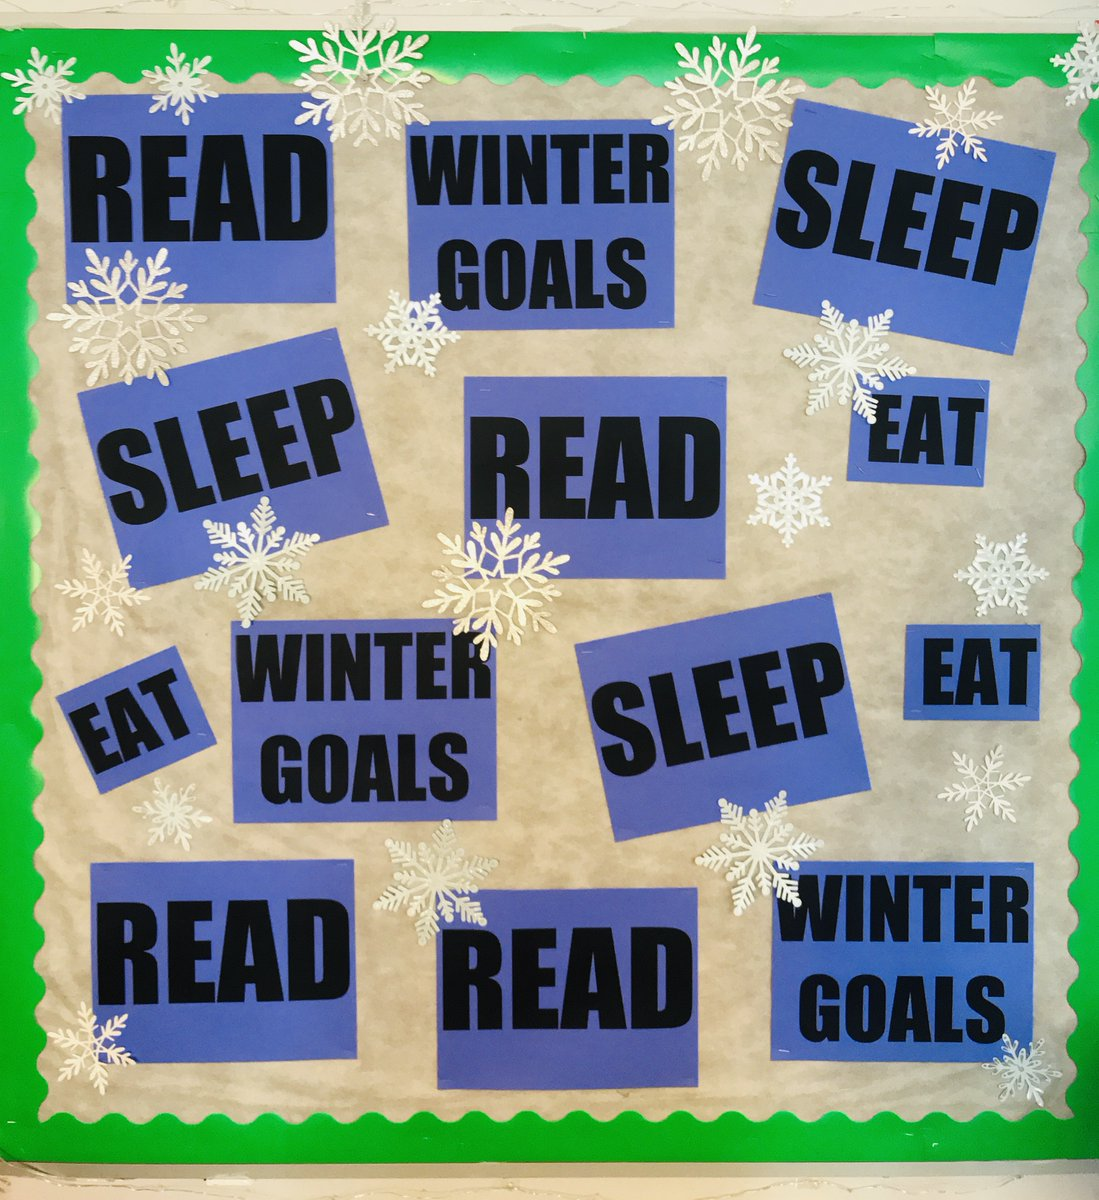 Happy Winter Break, <a target='_blank' href='http://twitter.com/YorktownHS'>@YorktownHS</a>! Stop by & grab a book if you haven't already & see you next year! 📚😊❄️ <a target='_blank' href='http://search.twitter.com/search?q=wintergoals'><a target='_blank' href='https://twitter.com/hashtag/wintergoals?src=hash'>#wintergoals</a></a> <a target='_blank' href='http://search.twitter.com/search?q=bookgoals'><a target='_blank' href='https://twitter.com/hashtag/bookgoals?src=hash'>#bookgoals</a></a> <a target='_blank' href='http://search.twitter.com/search?q=readsleeprepeat'><a target='_blank' href='https://twitter.com/hashtag/readsleeprepeat?src=hash'>#readsleeprepeat</a></a> <a target='_blank' href='http://twitter.com/APSVirginia'>@APSVirginia</a> <a target='_blank' href='http://twitter.com/Principal_YHS'>@Principal_YHS</a> <a target='_blank' href='http://twitter.com/YorktownAPs'>@YorktownAPs</a> <a target='_blank' href='http://twitter.com/ArlingtonVALib'>@ArlingtonVALib</a> <a target='_blank' href='https://t.co/58tqdUUY20'>https://t.co/58tqdUUY20</a>